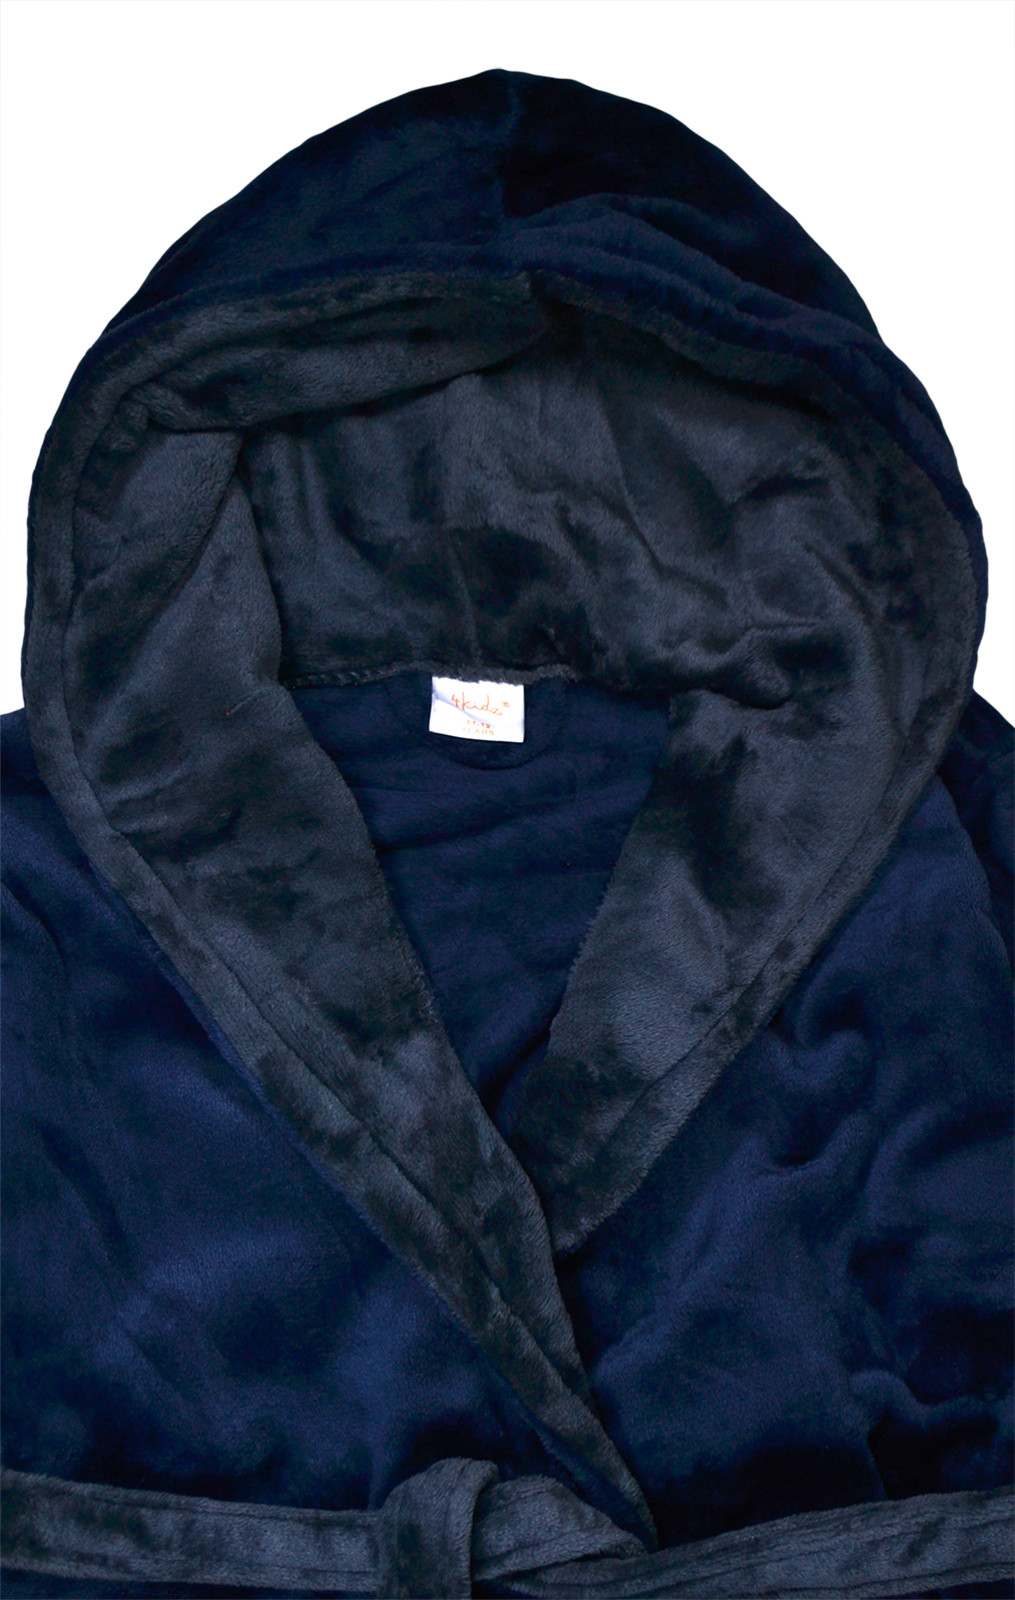 Boys-Dressing-Gown-New-Kids-Fleece-Hooded-Bath-Robe-Black-Navy-Ages-7-13-Years thumbnail 8